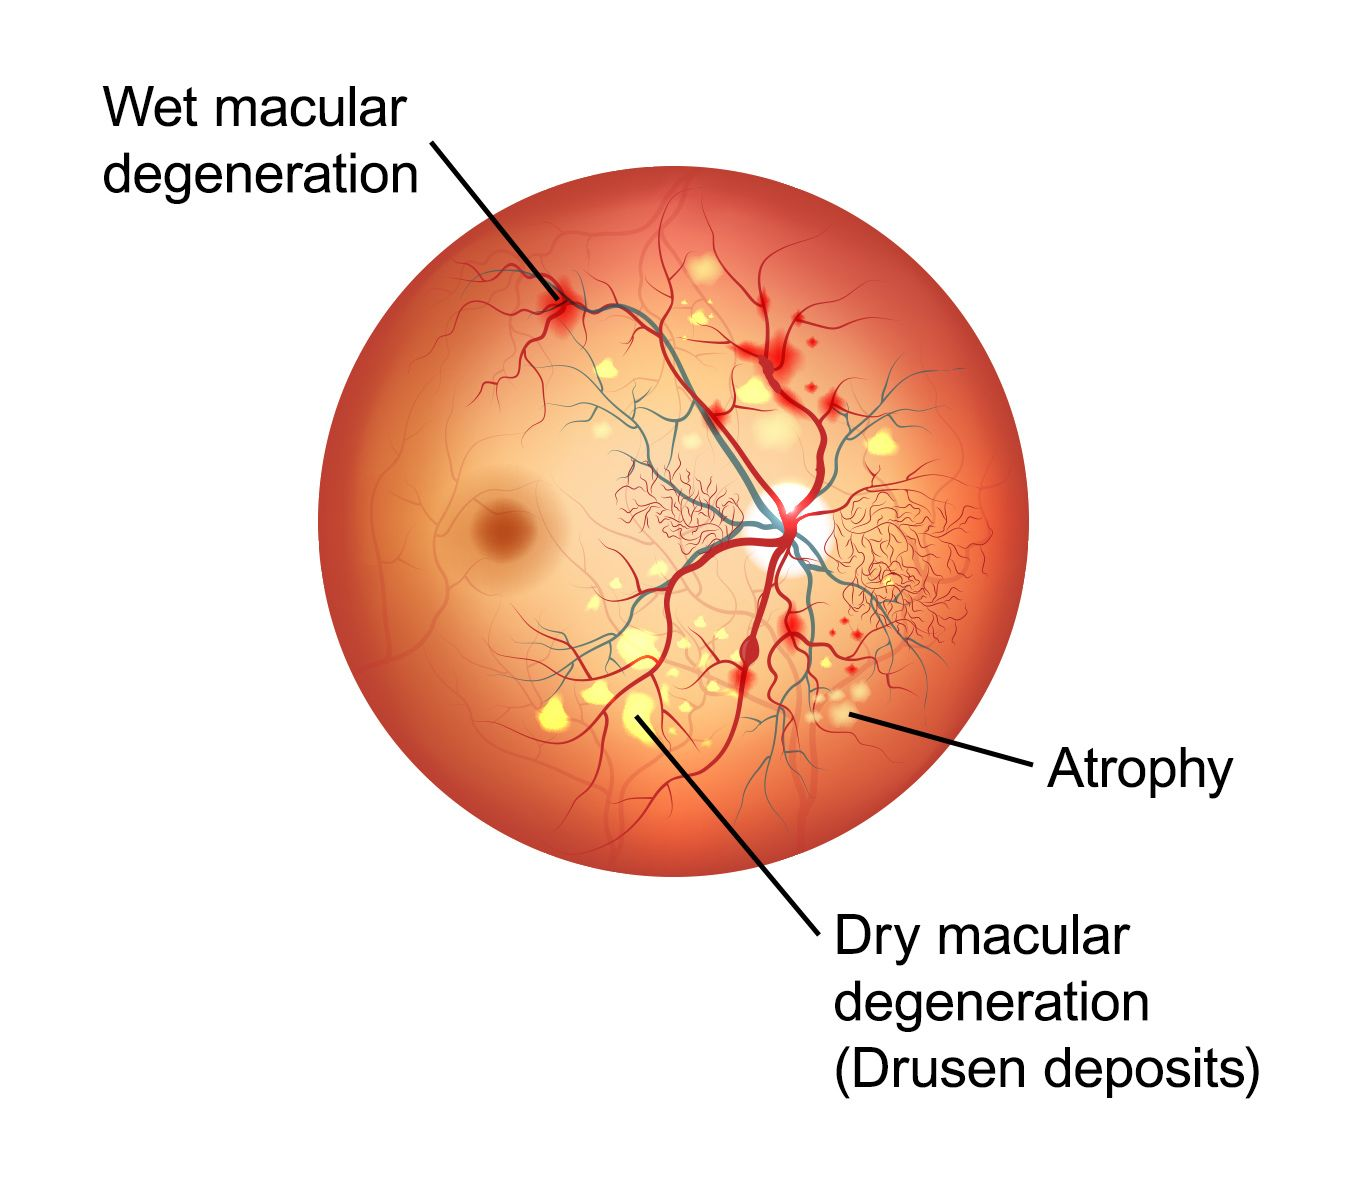 Illustration of an eye affected by macular degeneration